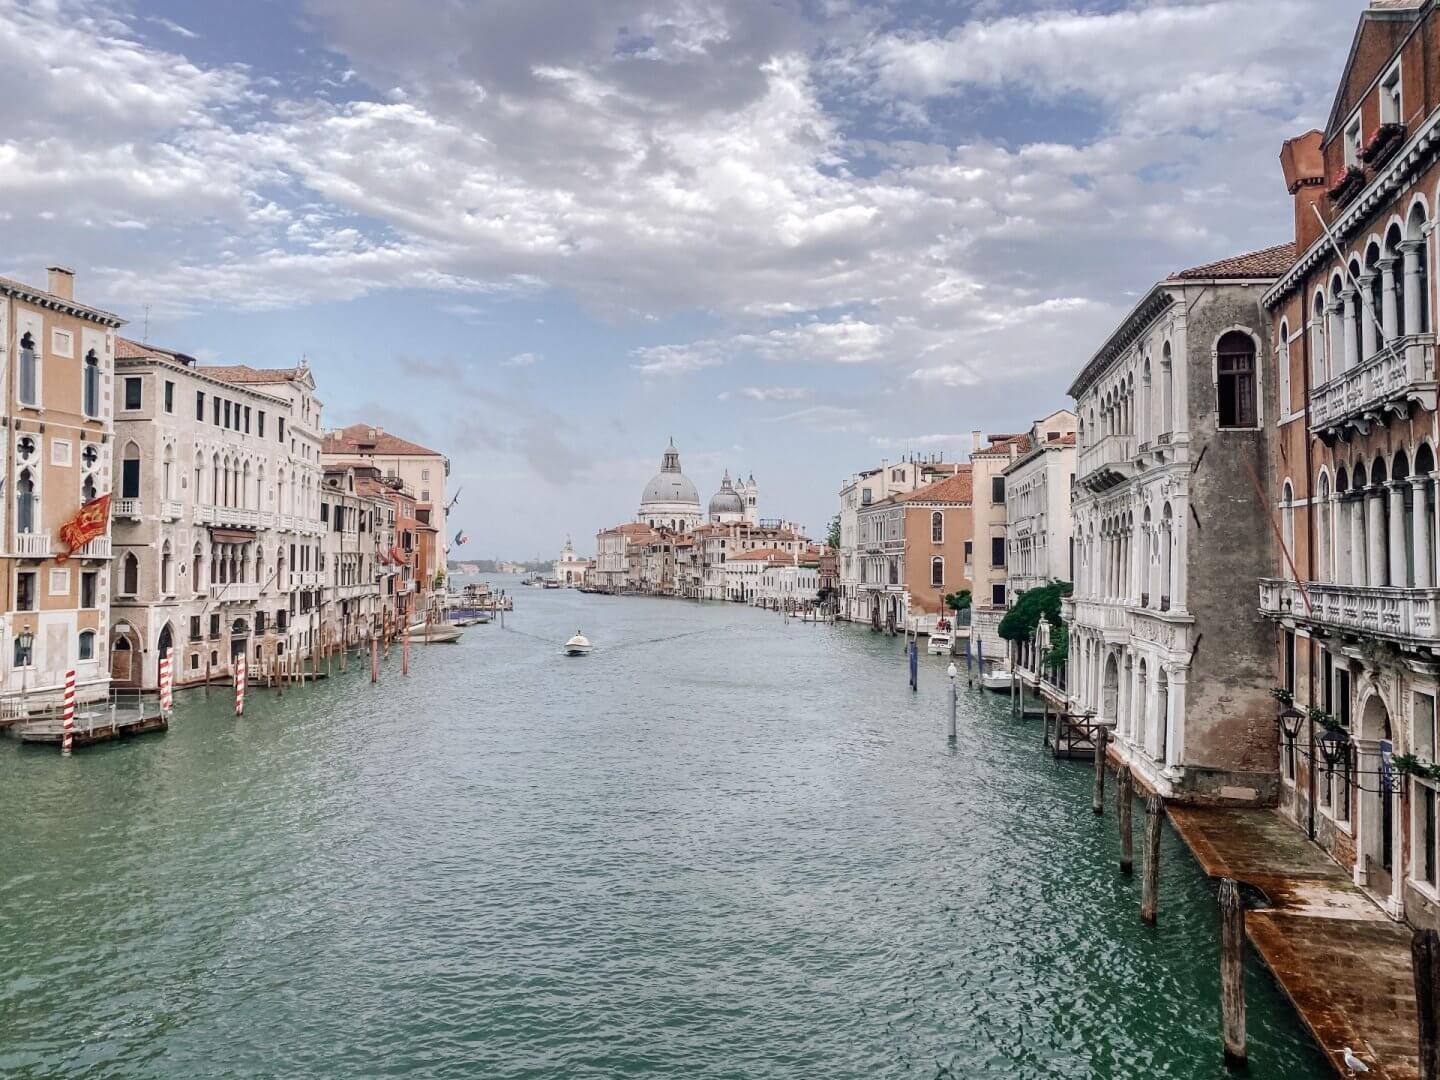 Image of Grand Canal from Ponte dell'Accademia, Venice